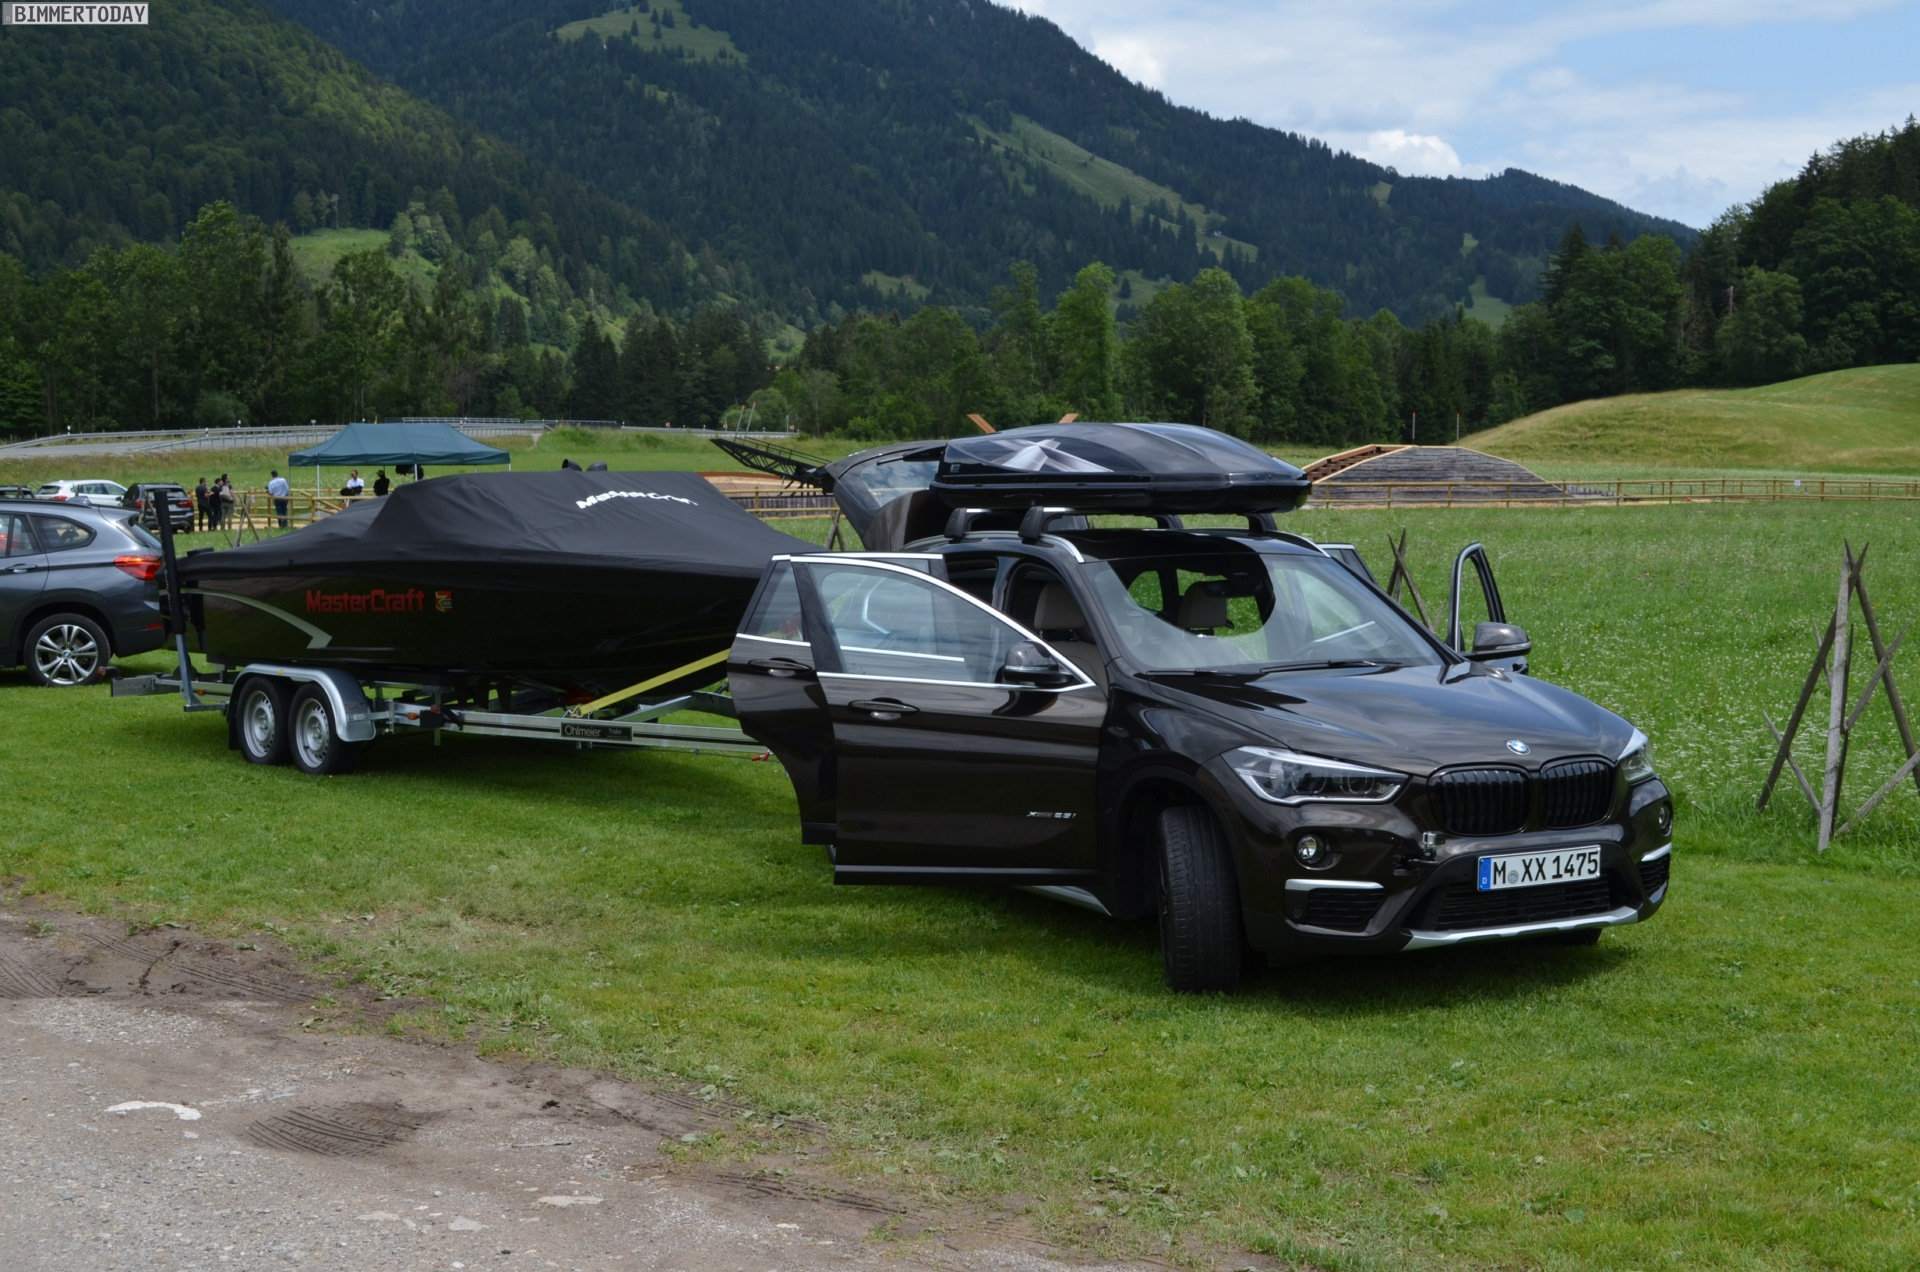 new bmw x1 can tow a 2 000 kg boat. Black Bedroom Furniture Sets. Home Design Ideas